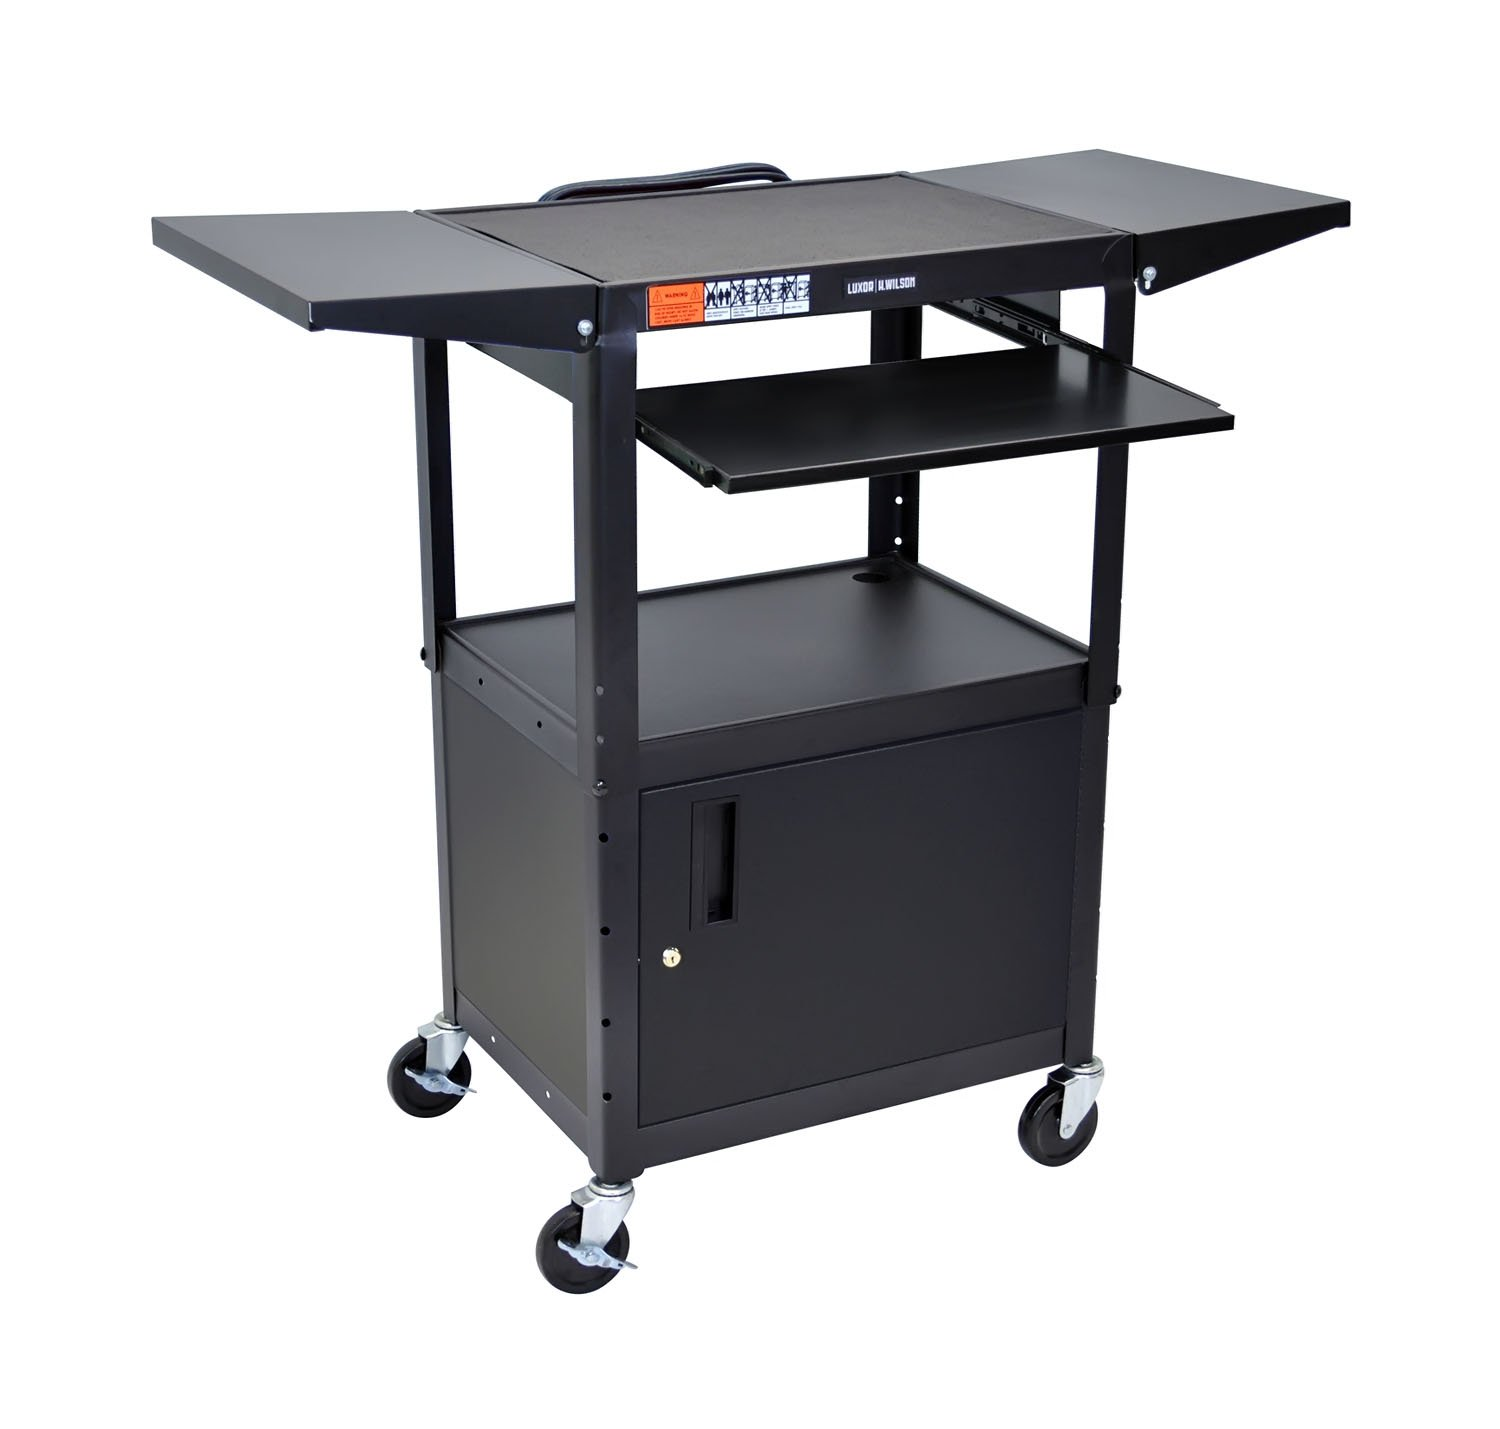 LUXOR AVJ42KBCDL Height Adjustable Steel AV Cart with Pullout Shelves and Cabinet